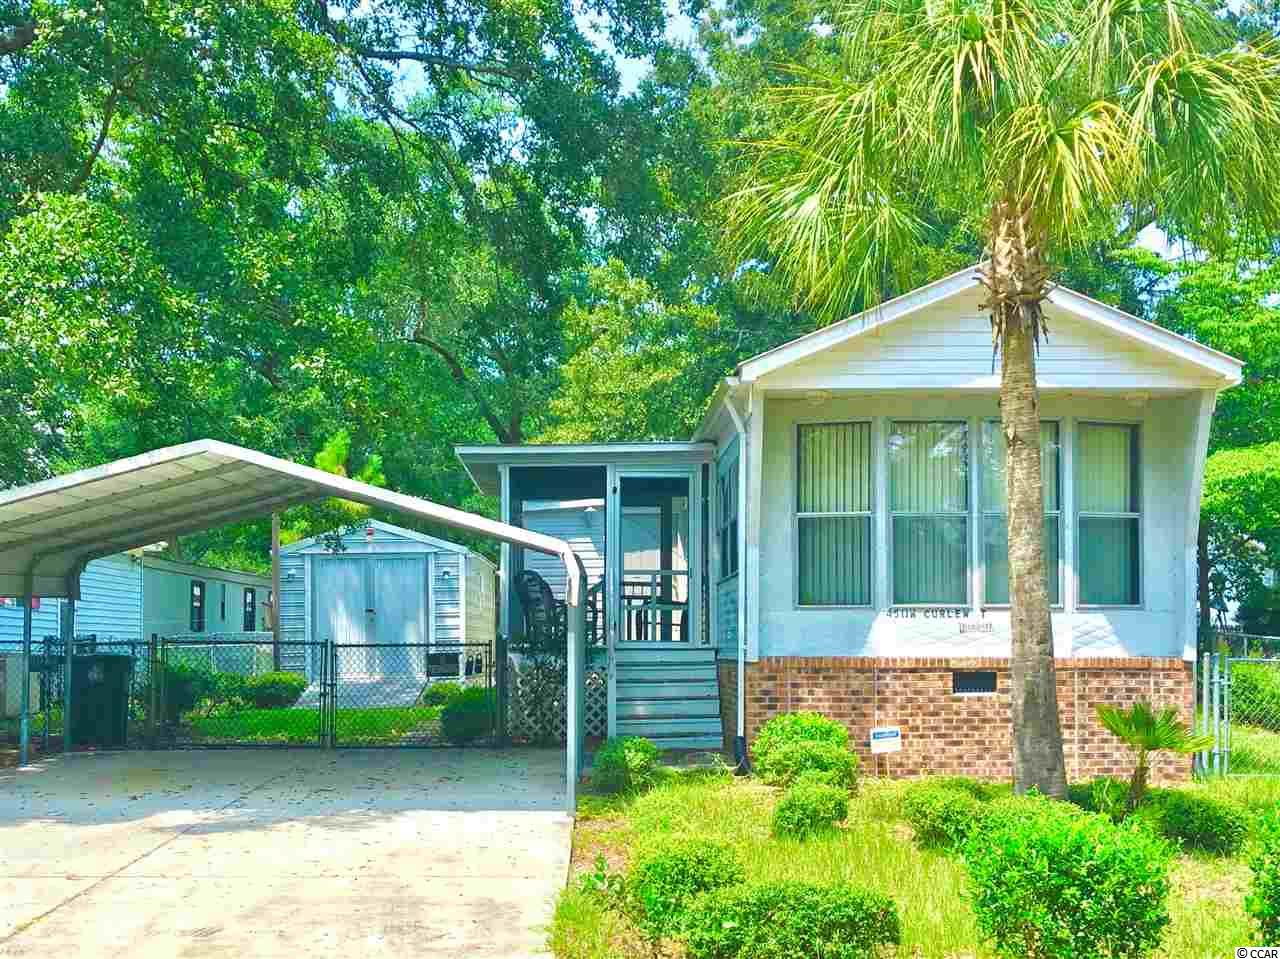 The coastal feeling is in the air!  Well-maintained, clean, spacious home on owned land in a fantastic location in the desirable Cherry Grove section of North Myrtle Beach is a rare find.  Convenient to everything the Grand Strand has to offer yet in a serene, lovely low country coastal setting. The marsh is just a few steps away where the views overlooking Cherry Grove inlets are astonshing!  Pelicans, egrets, gulls, and marsh views are plentiful in this picturesque area and the white, sparkling sand of the beach is just minutes away.  Screened porch, brick foundation, fenced yard, carport offering room to park your boat, concrete driveway, and also a large shed. No HOA!!! No lot rent!!! Not in a designated flood zone!  This is a great value for serious cash buyers for a primary residence, awesome beach home, investment, or rental property.  Come enjoy the salt life!!!